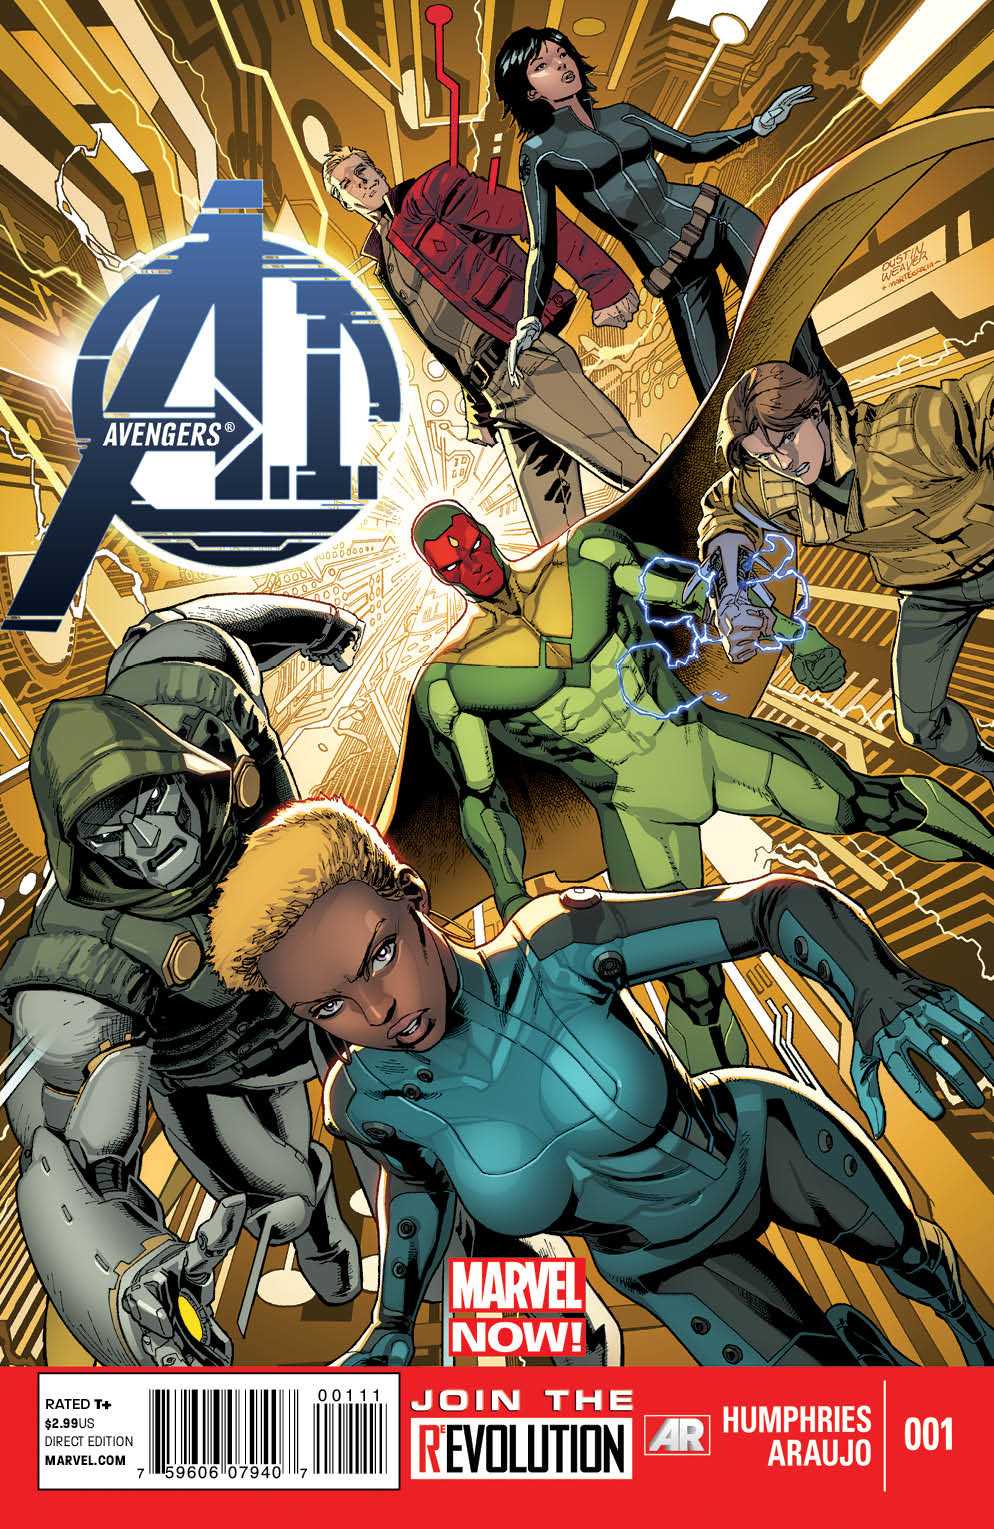 A new Avengers Rise- Avengers A.I Hits This July